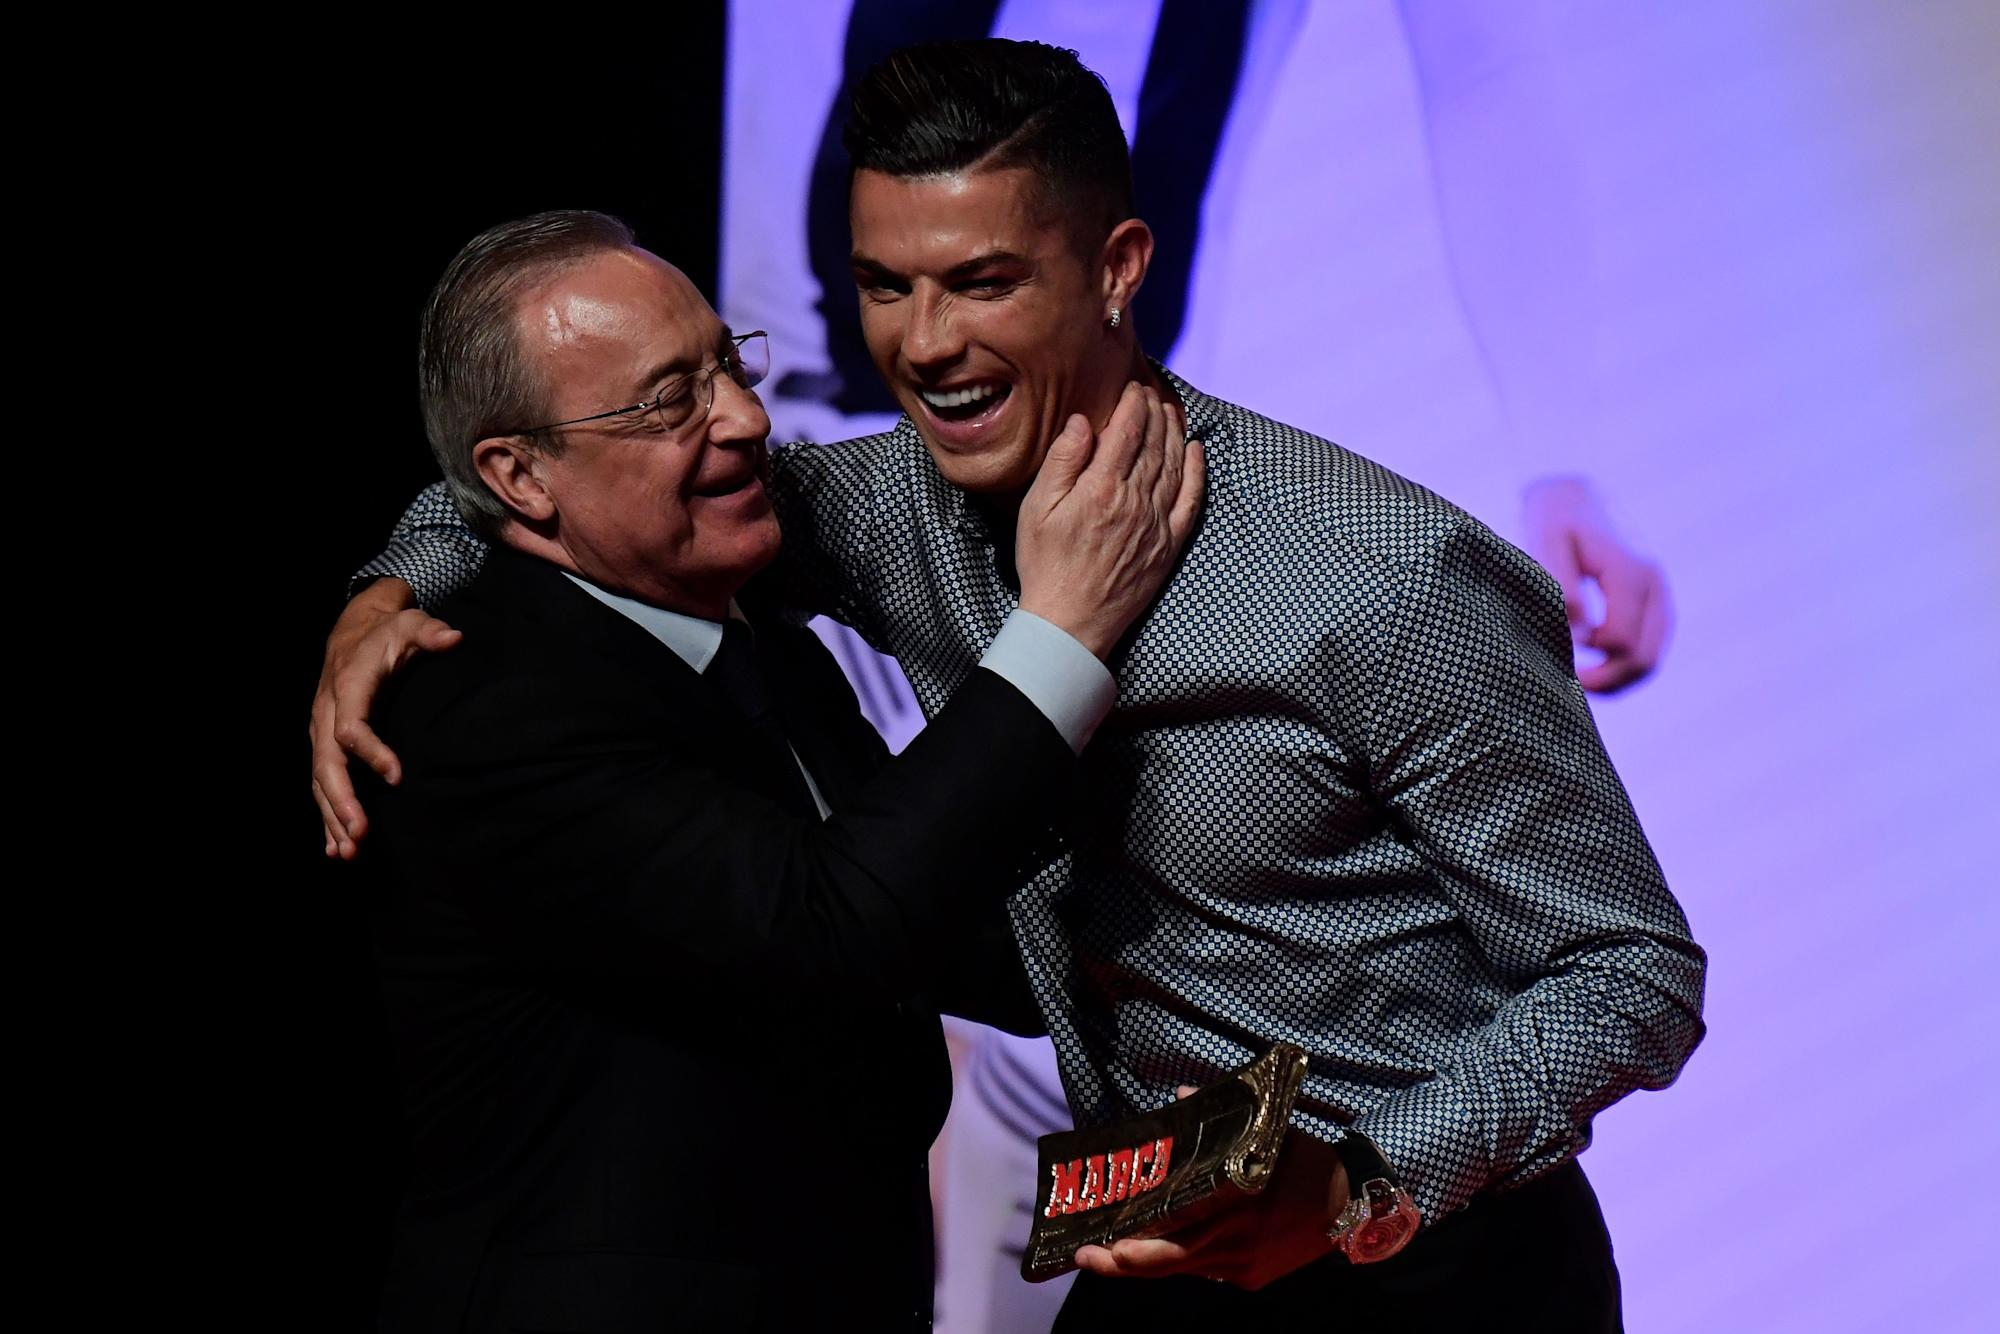 The new acoustics revealed by Florentino Perez, President of Real Madrid